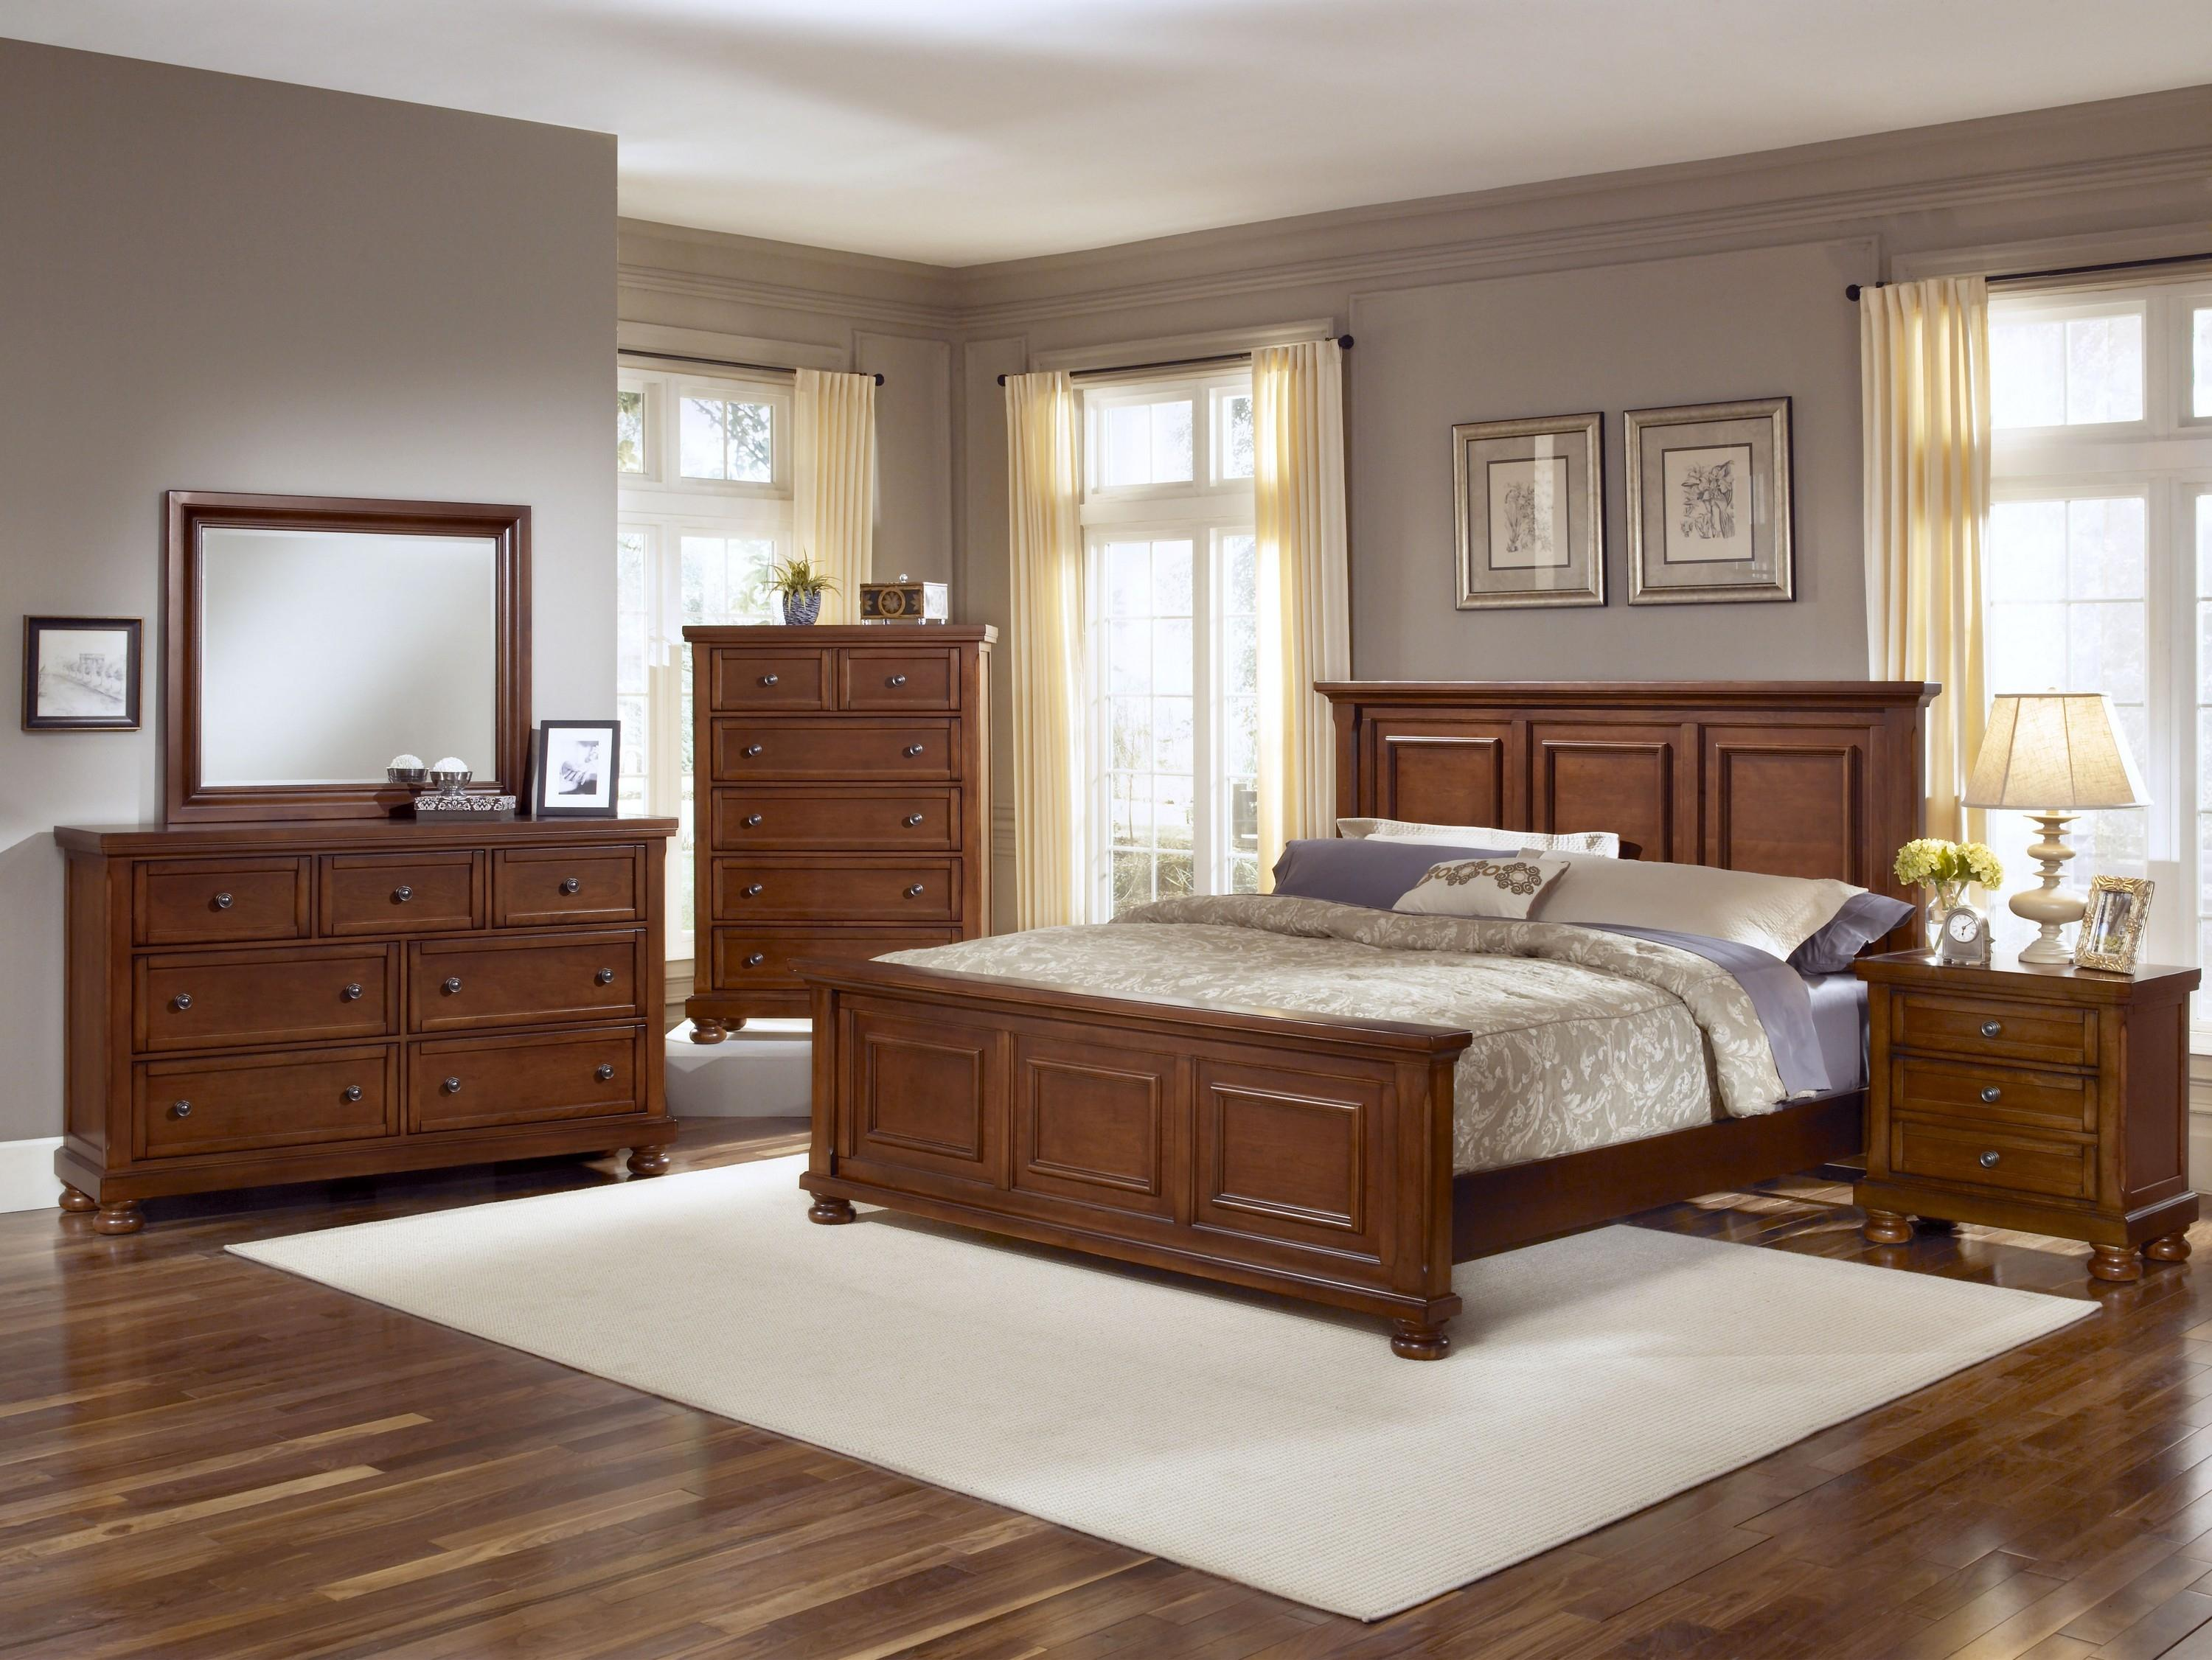 ellington sleigh pieces buy vaughan bedroom bed bassett furniture magnifier vbellisleighbed w raw